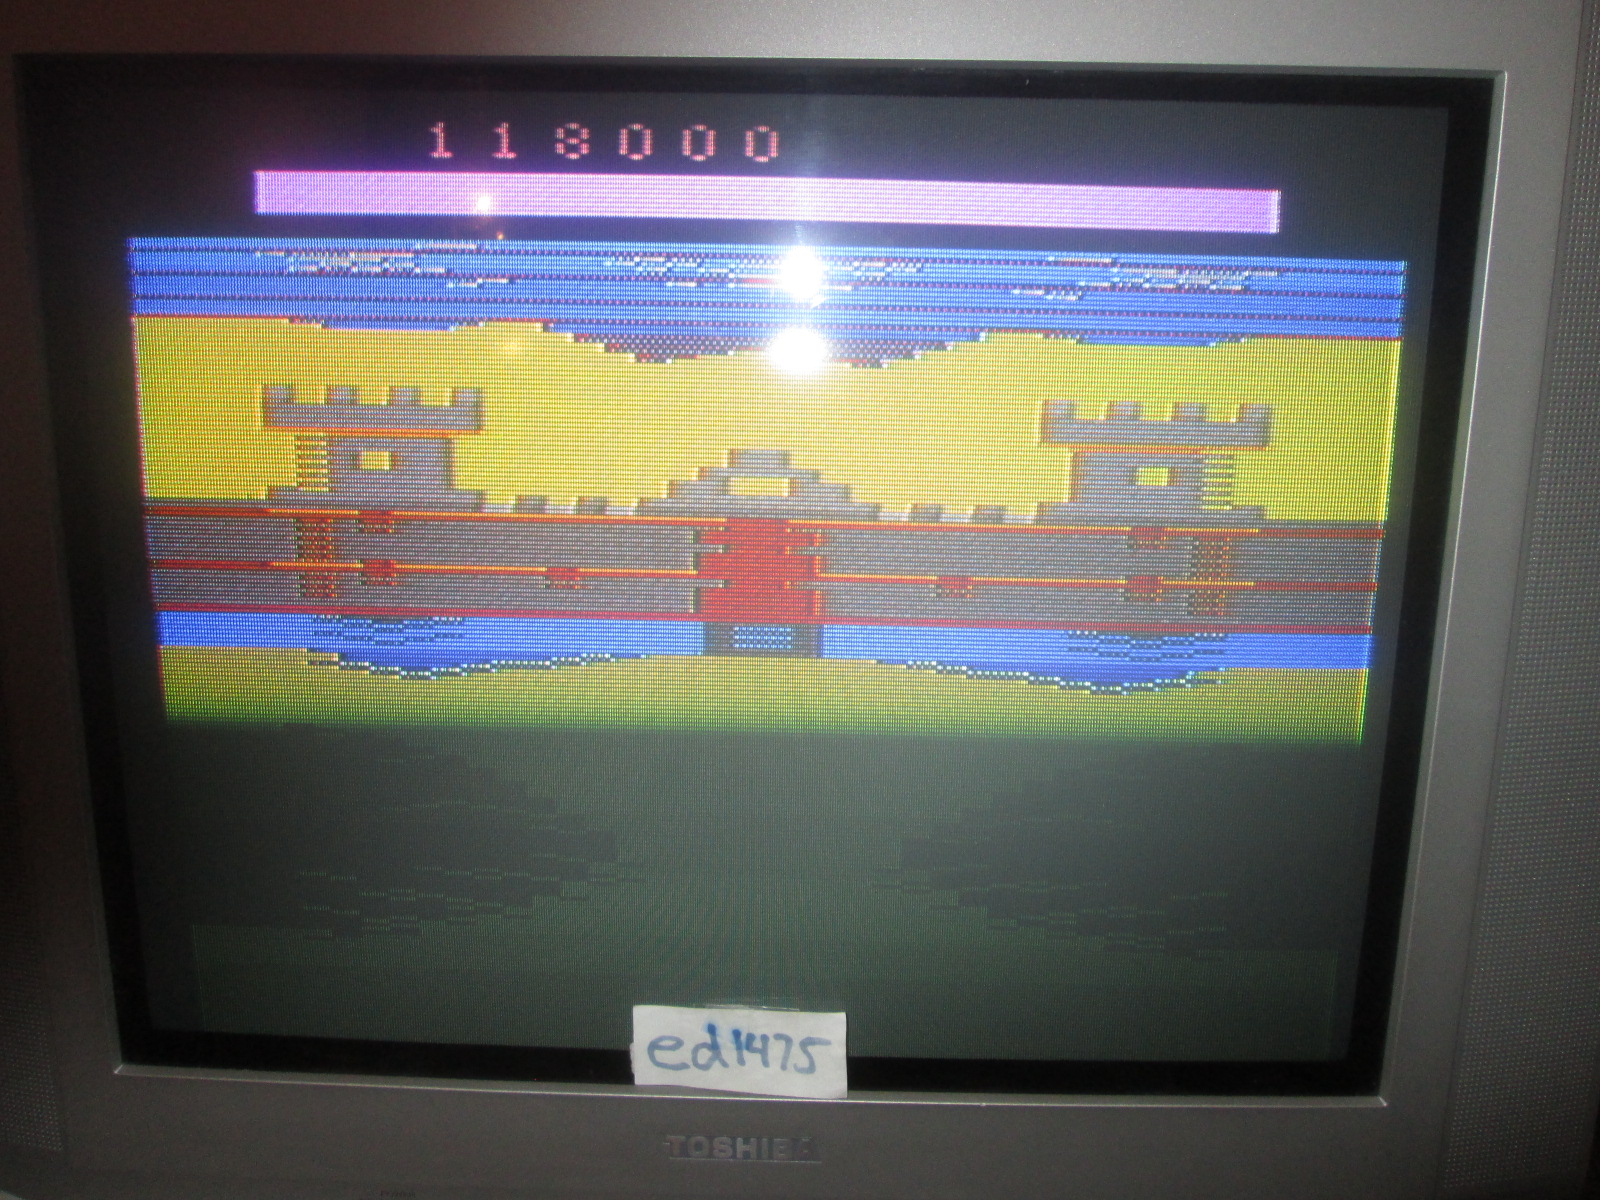 ed1475: Robin Hood (Atari 2600 Novice/B) 118,000 points on 2014-11-22 13:00:07